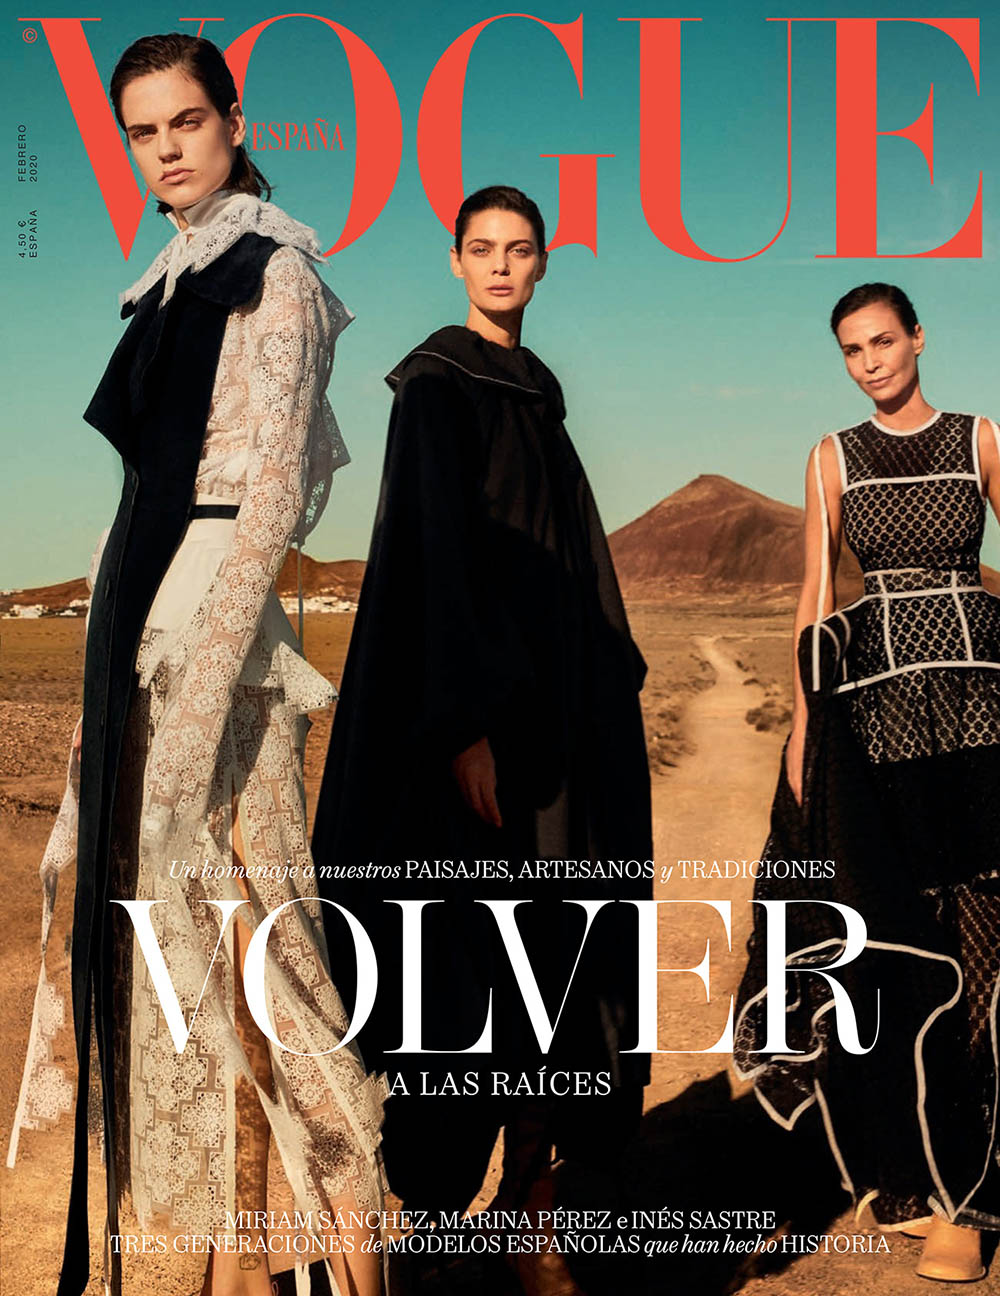 Vogue Spain February 2020 cover by Txema Yeste